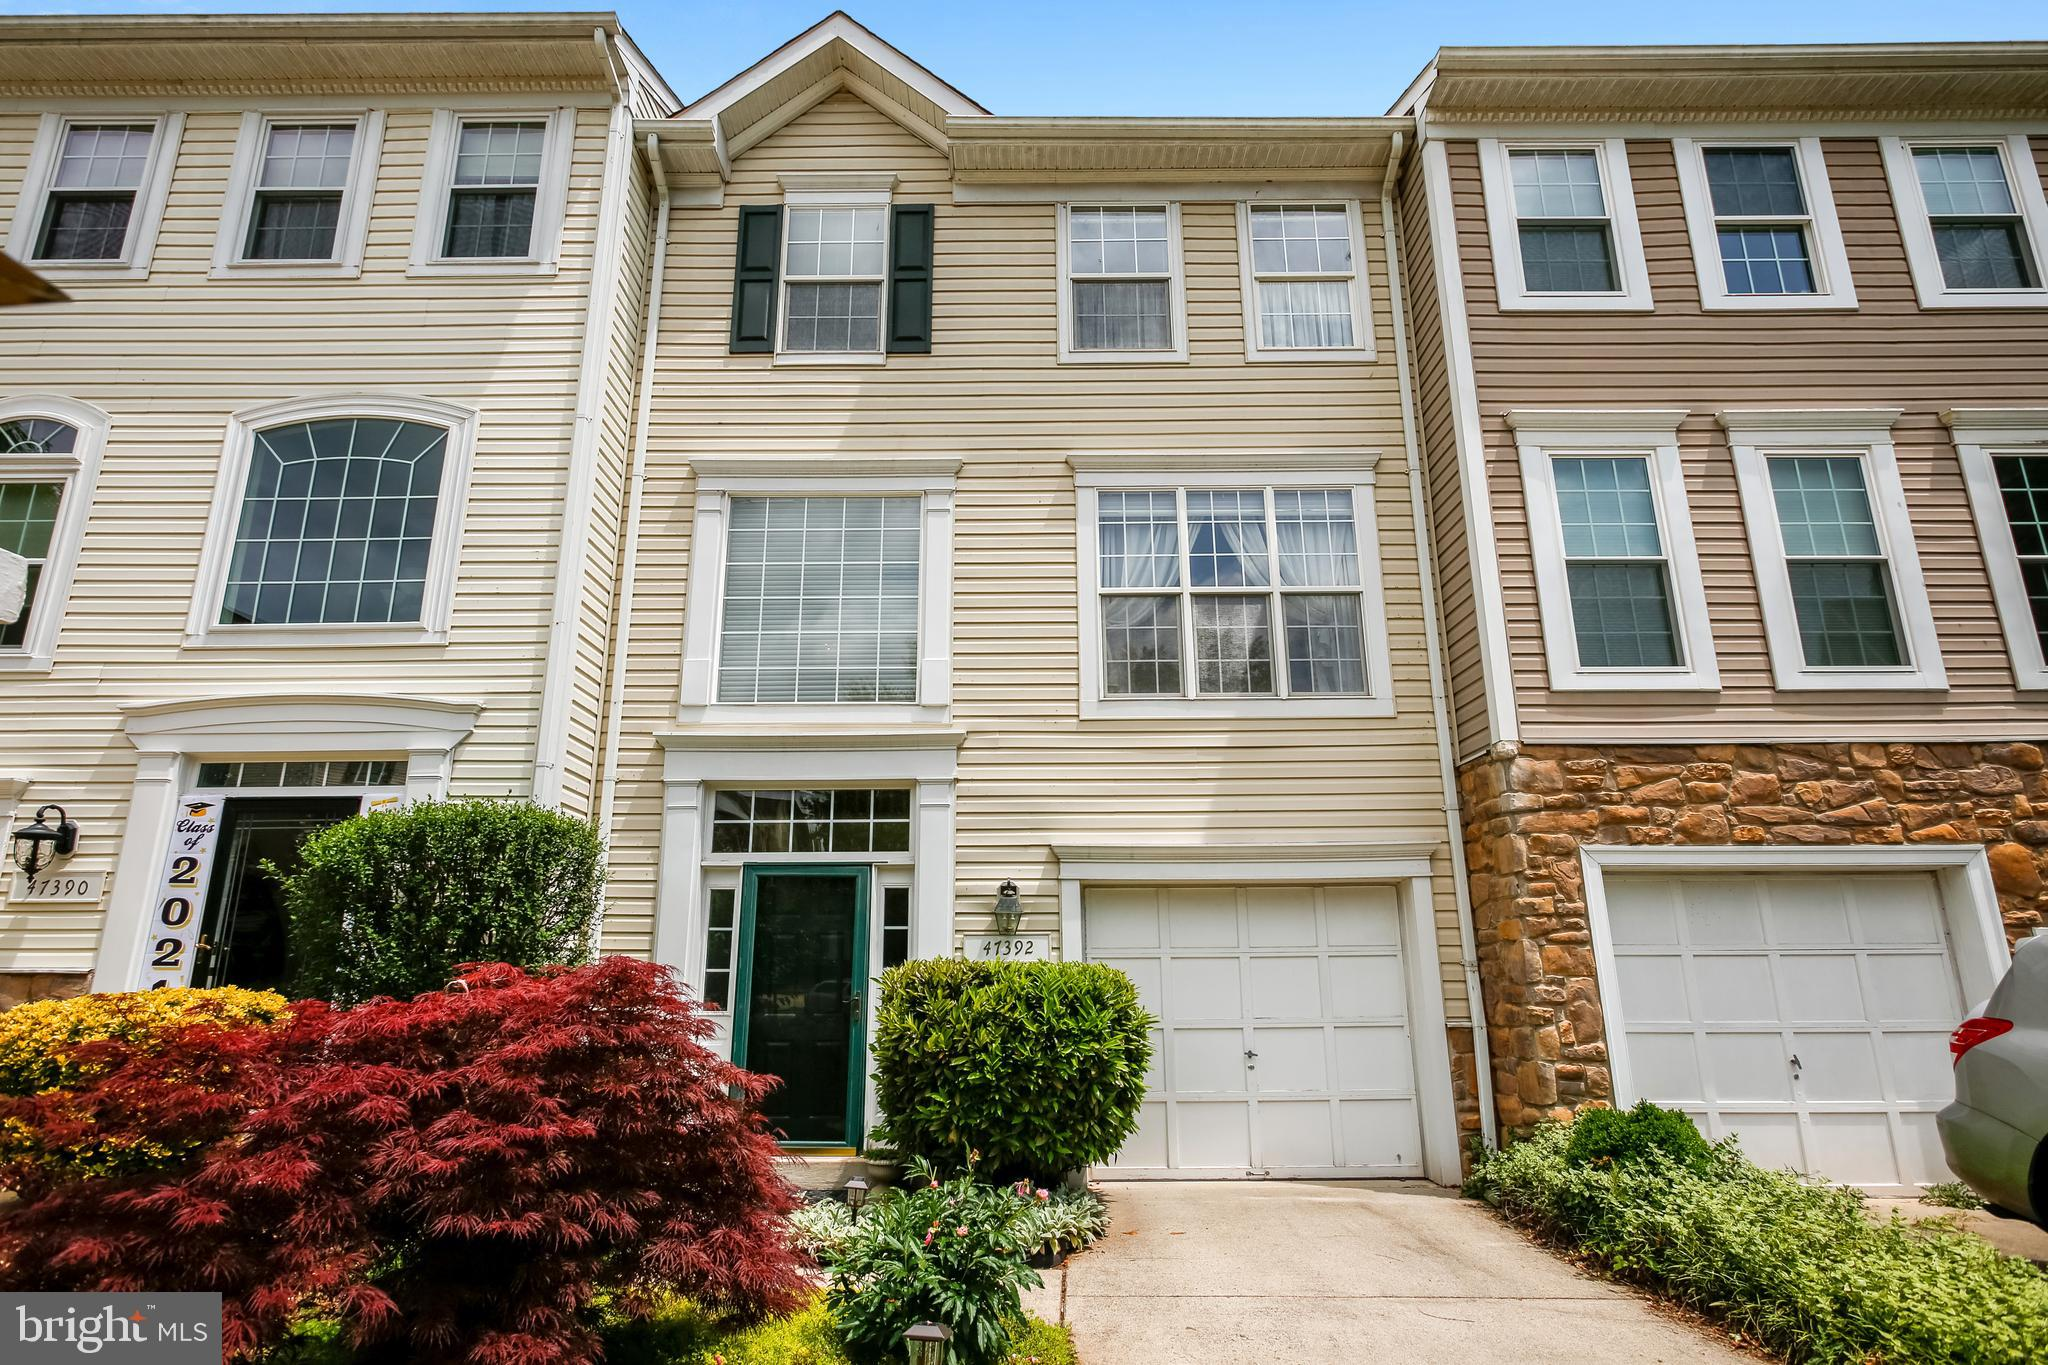 Open House on Sunday, July 11th from 1-4pm Simply stunning and meticulously maintained, 3 level garage townhome with 3-bedroom, 2.5 bath. This home will capture your heart.  This original owner occupied home is available for responsible showings via advanced online scheduling appointments.   We invite you to explore all this home has to offer while following CDC guidelines.    Open the front door onto a finished lower level, boasting a huge living area, gas fireplace, half bath, one car garage, gorgeous patio and a gardener's dream yard. Main level sliding doors allow natural light to flood into the spacious eat in kitchen, dining and living room. Stroll onto the large private deck from the kitchen for your morning coffee before you start  the day.  As you enter the upper level a luxurious master bedroom with vaulted ceiling, walk-in closet, and ensuite bath welcomes you. In addition, there are two generous sized bedrooms, a large full bathroom and a laundry with washer and dryer make this home perfect. The popular Great Falls Chase neighborhood has so much to offer including pool, basketball courts, tennis, trails, and tot lot. Ideal location with nearby restaurants, shopping, and commuter bus service. Minutes to Rts. 7 & 28, Fairfax County Parkway, Dulles Airport, the W&OD bike path, and Algonkian Regional Park.